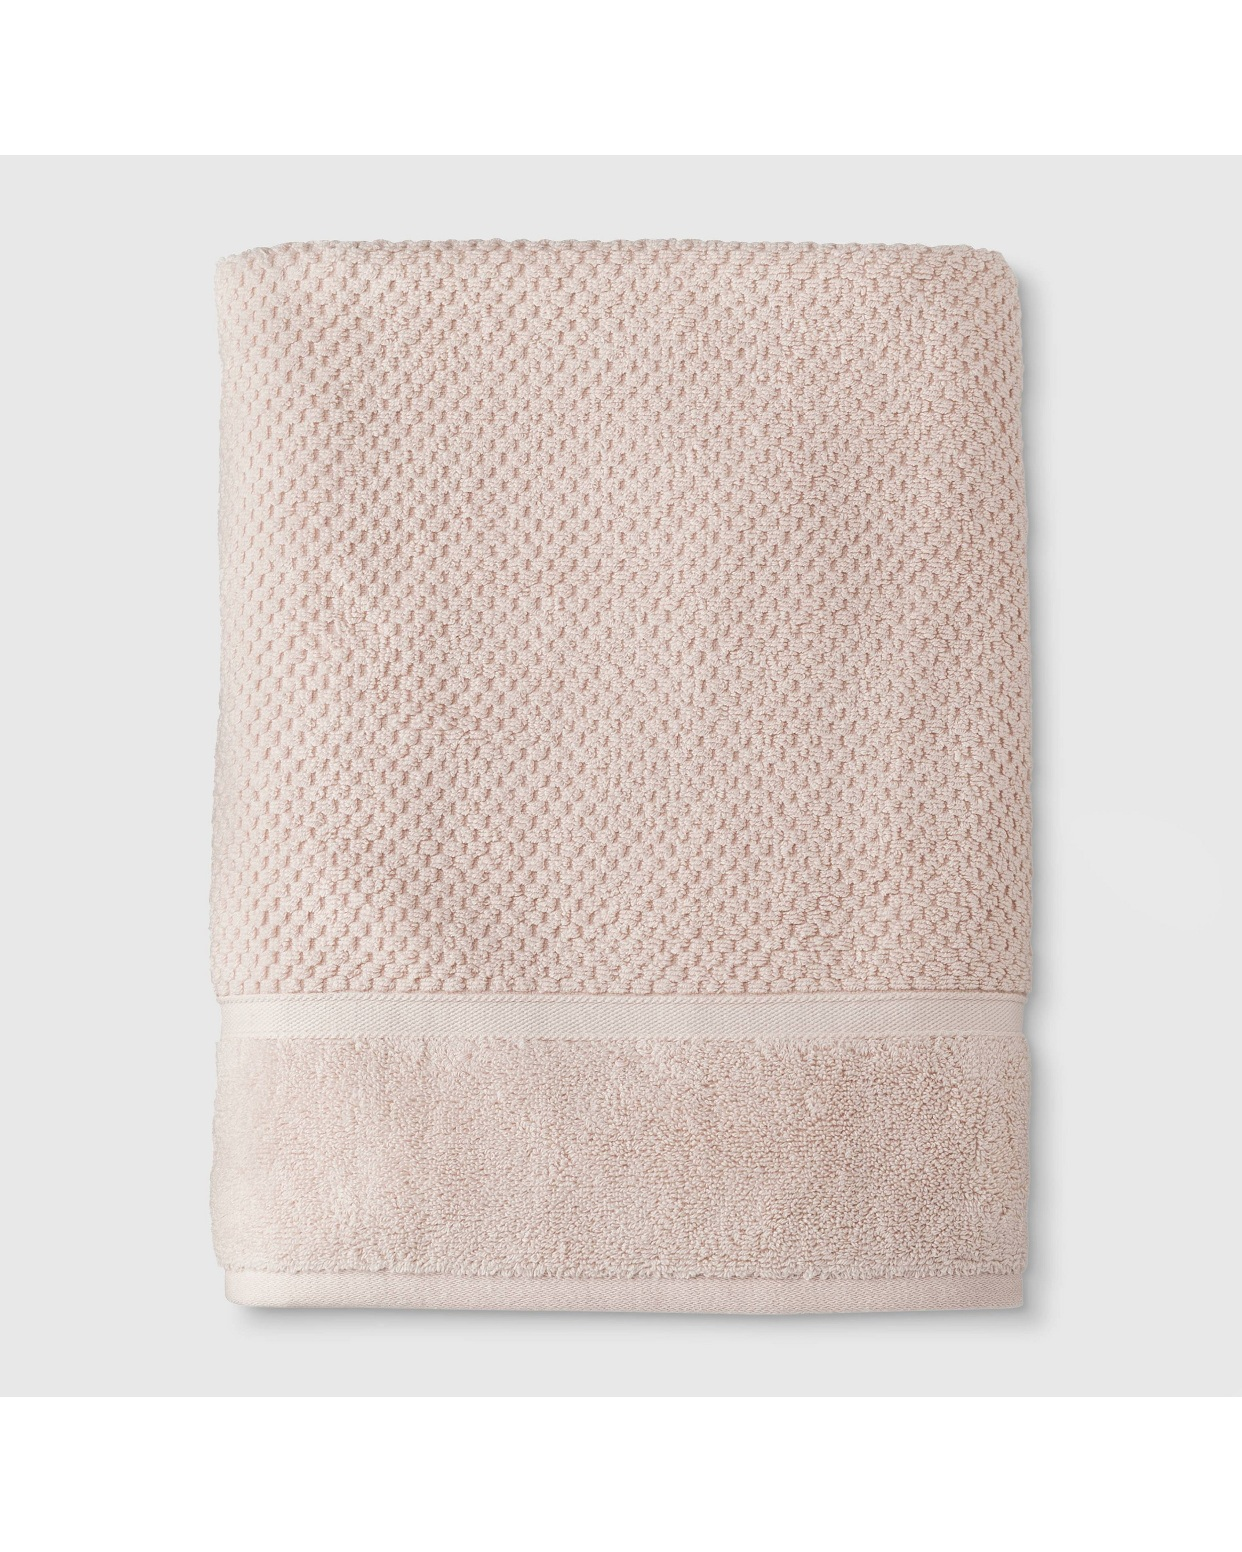 - Reaaly realy really big towels! Great quality and this blush color is a dream!Find them here.